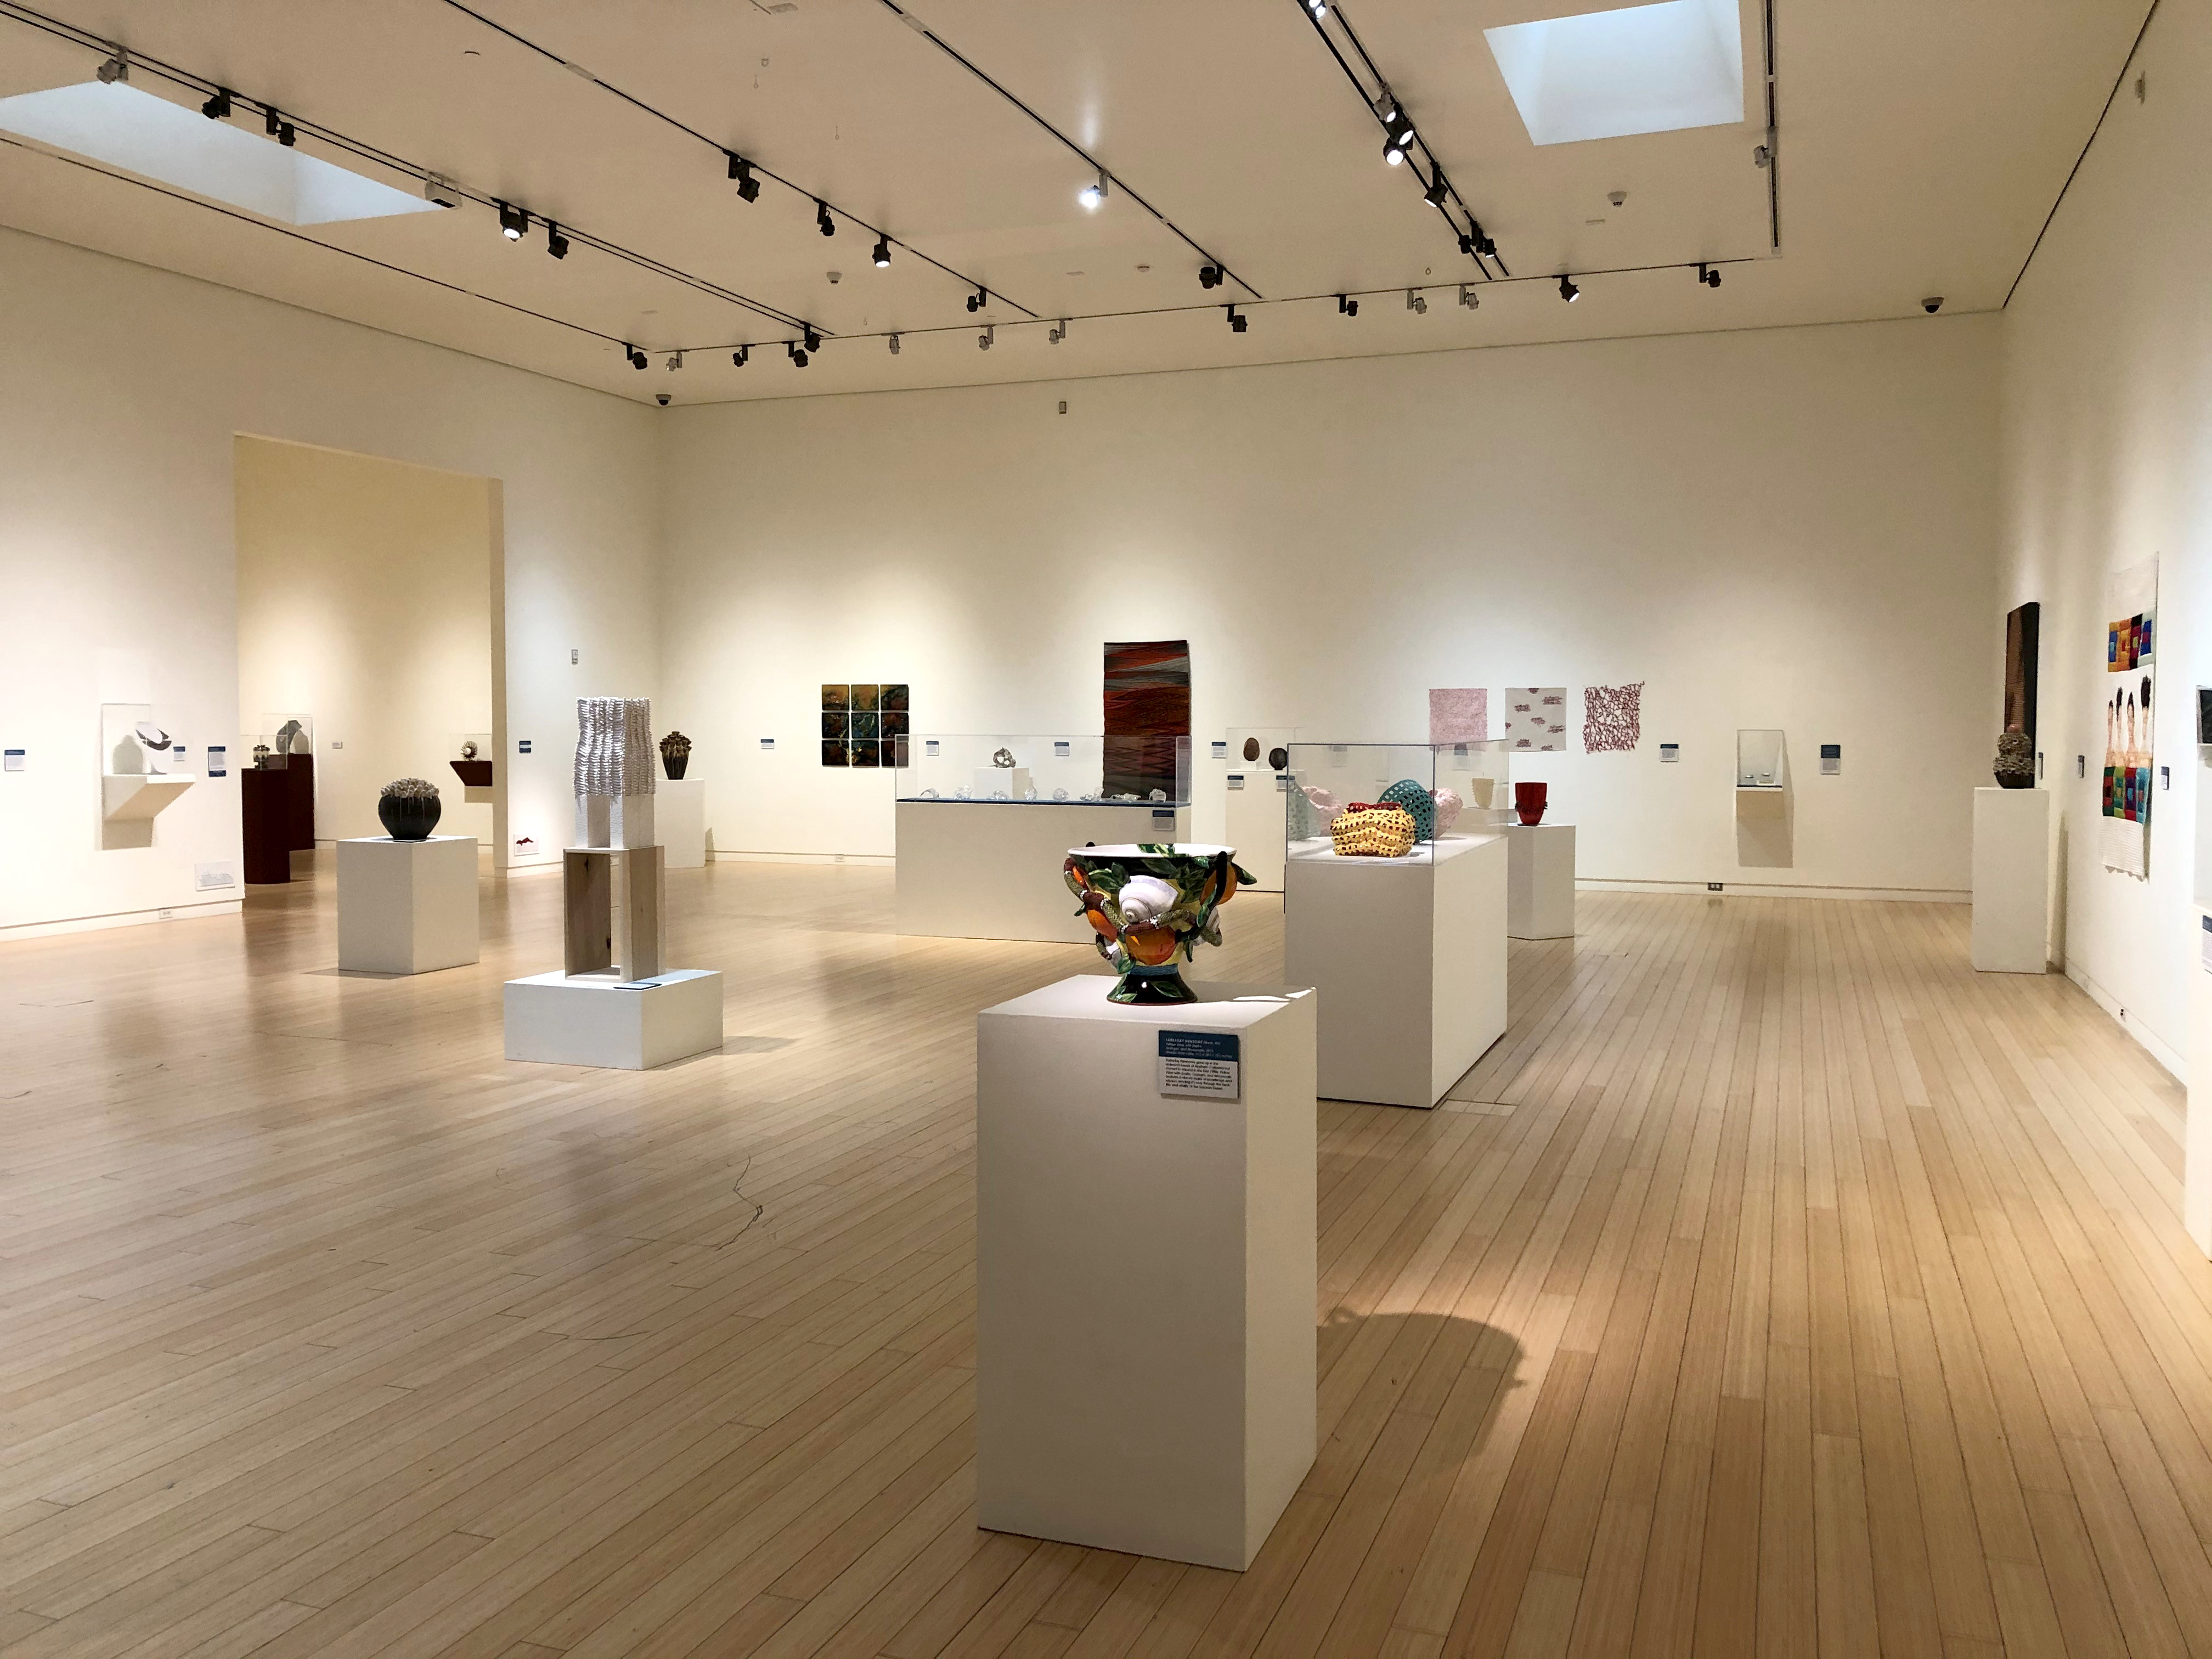 Contemporary Crafts exhibition set up at museum